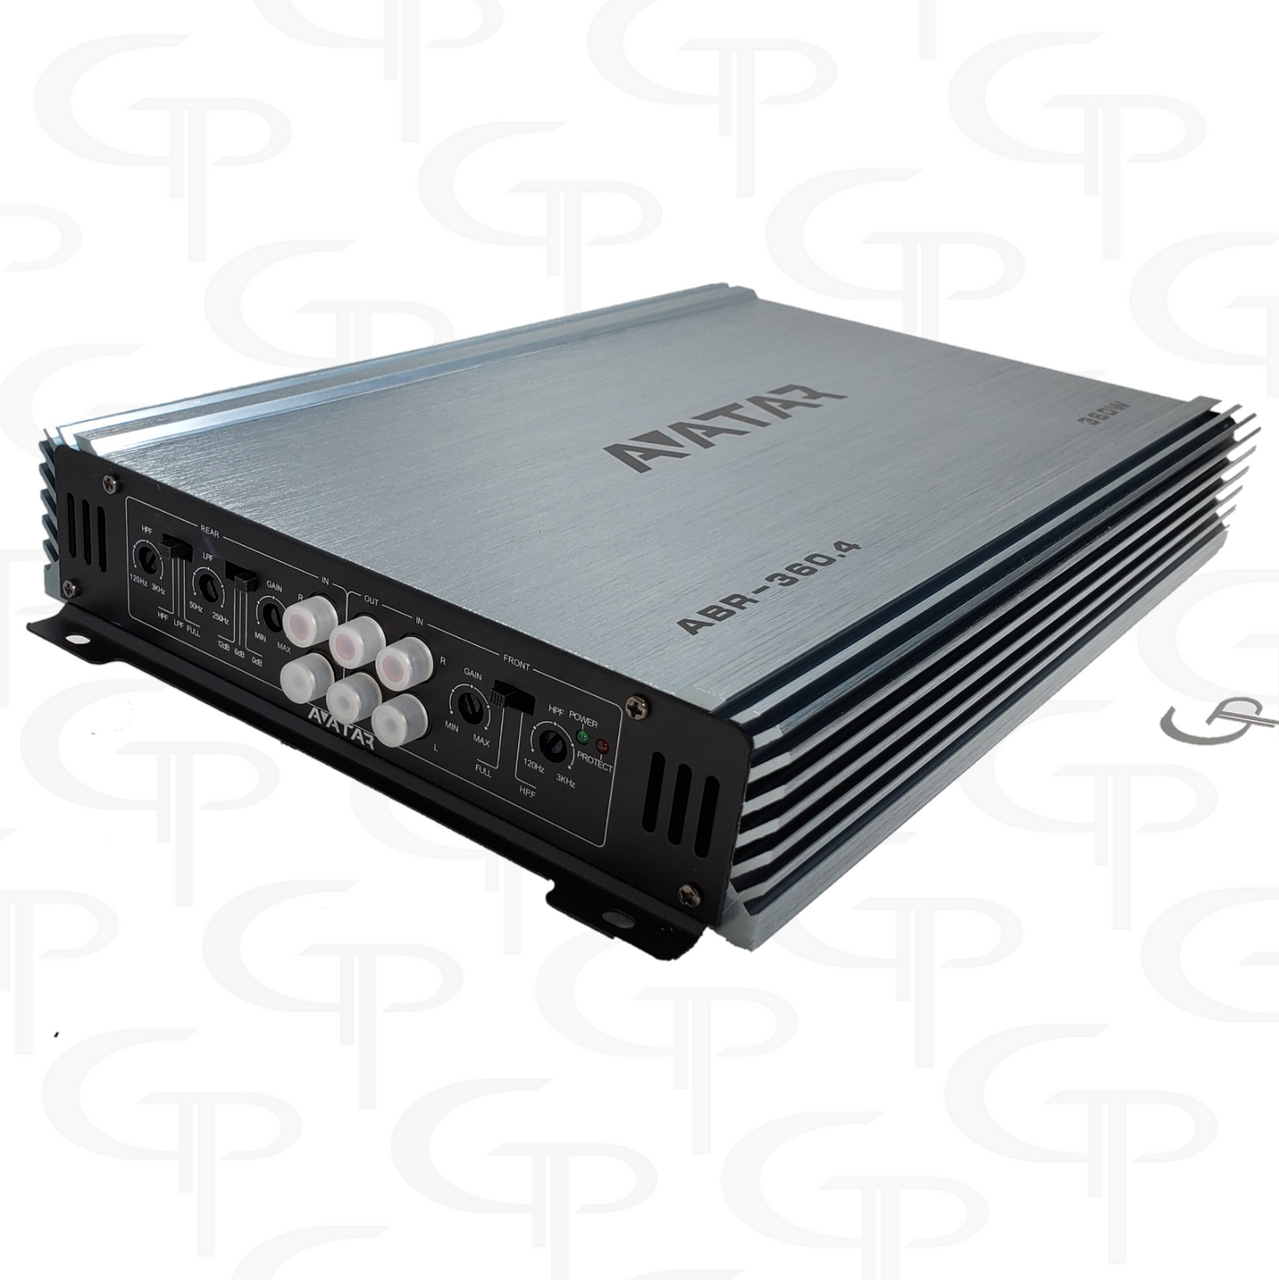 Avatar ABR-360.4 | 360 Watt 4-channel Amplifier